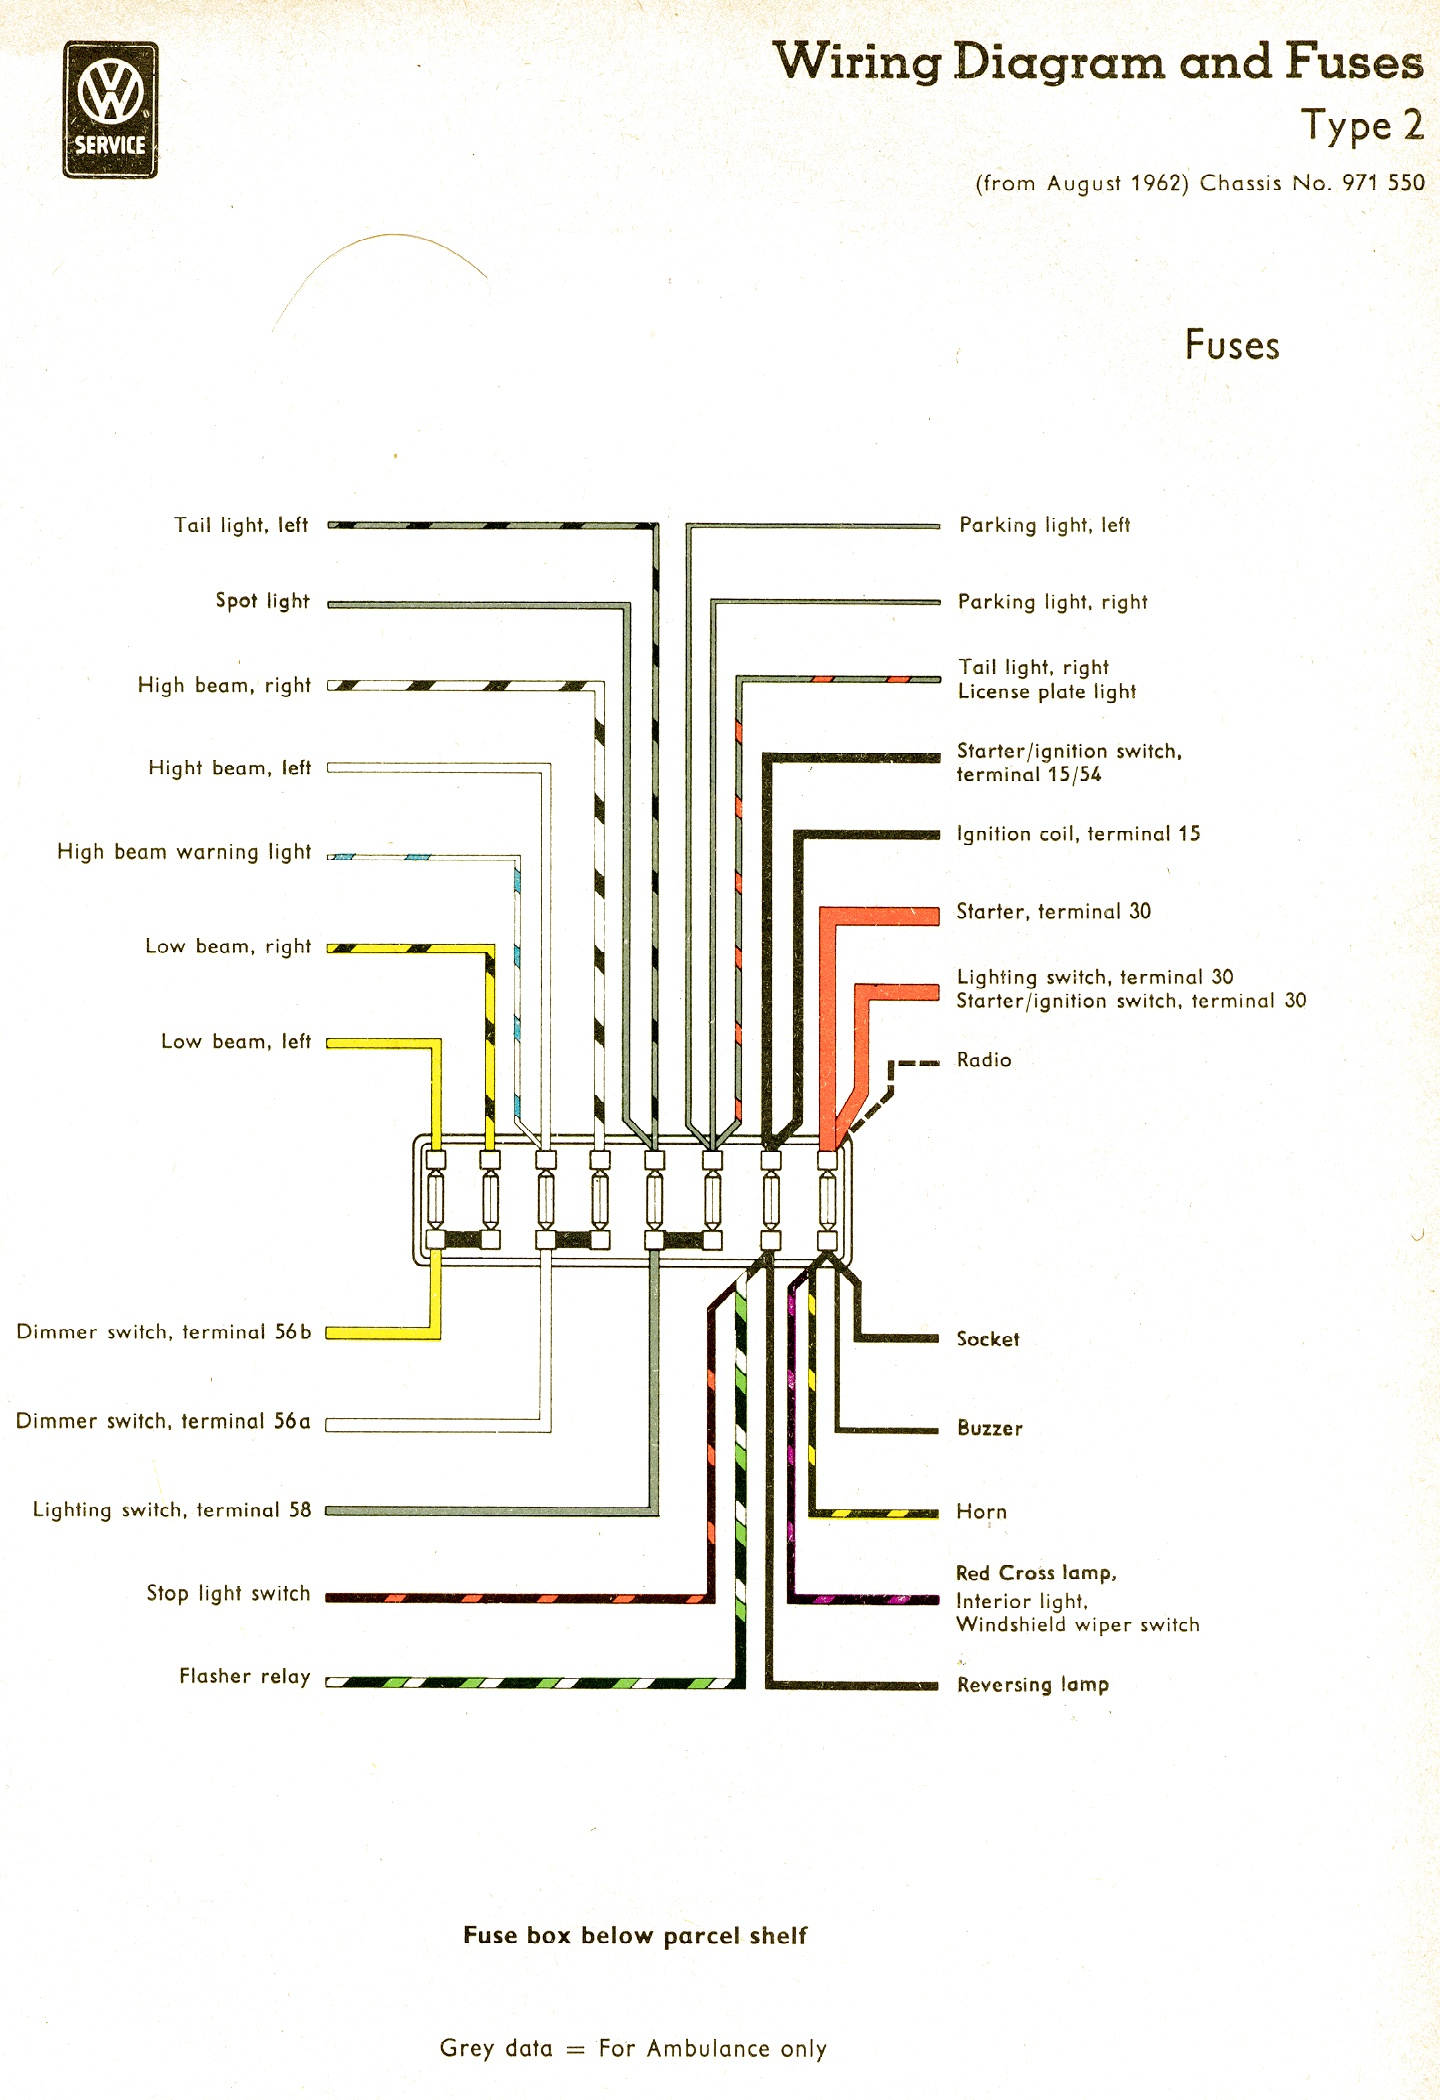 bus 62 fuse vw wiring diagrams fuse box diagram for 1977 chevy c10 at edmiracle.co